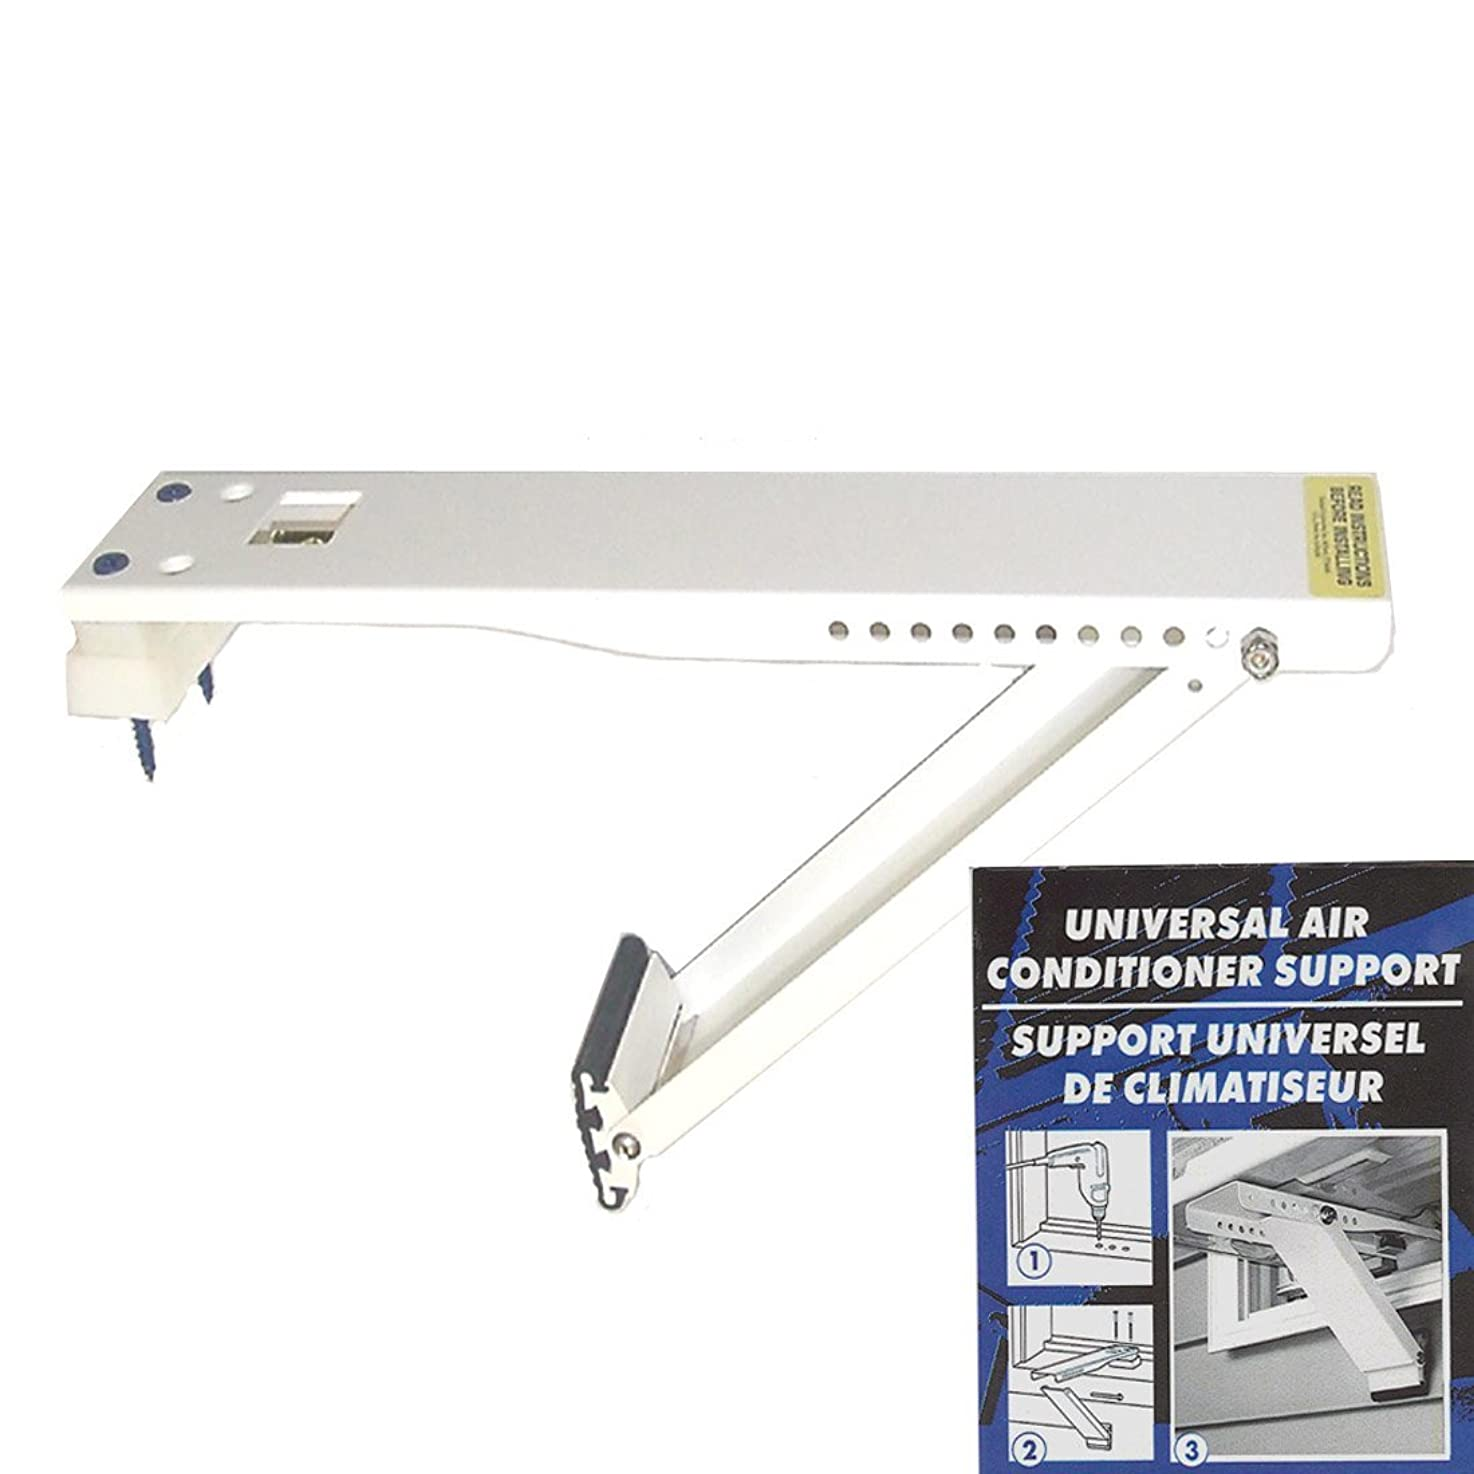 AC Safe AC-080 Universal Light-Duty Air Conditioner Support Bracket, Upto 80 Pounds (Certified Refurbished) rvarwalhnvmbp8